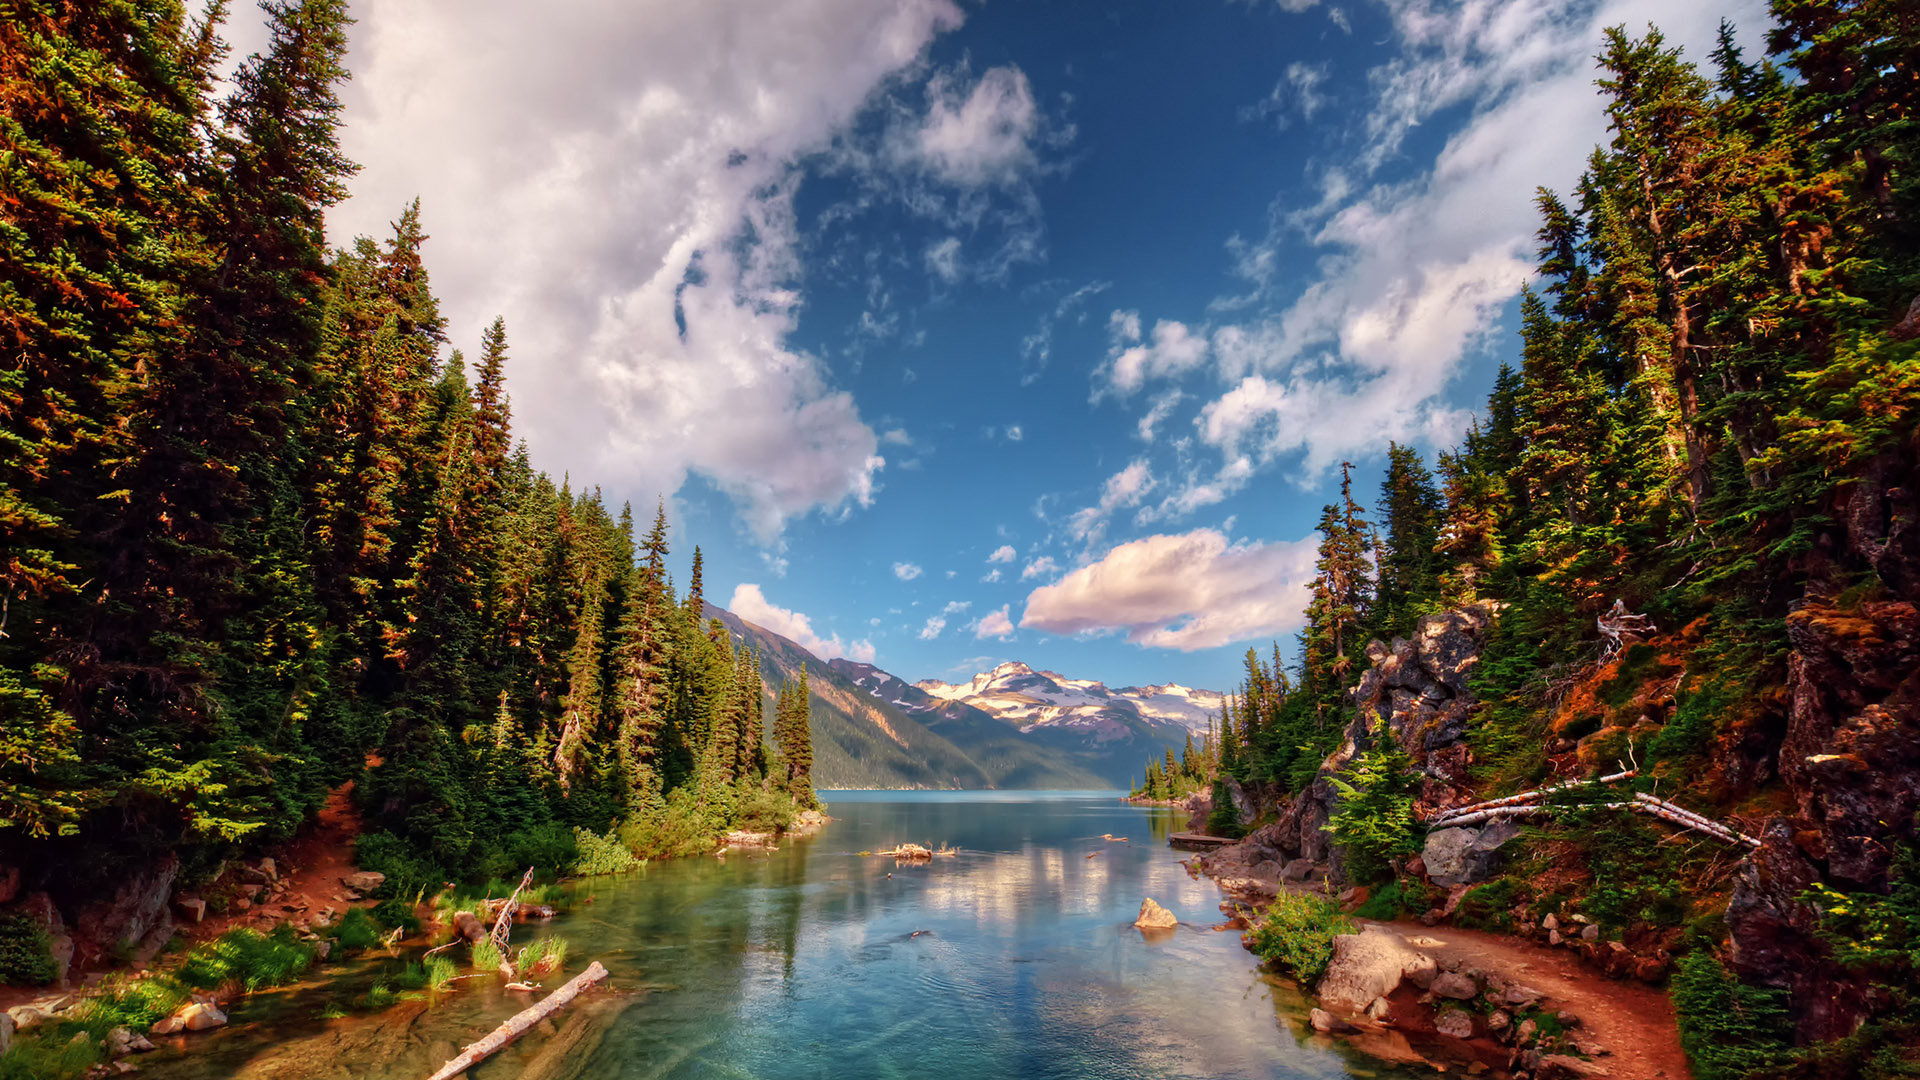 America's 58 National Parks - Gates of the Arctic National ...